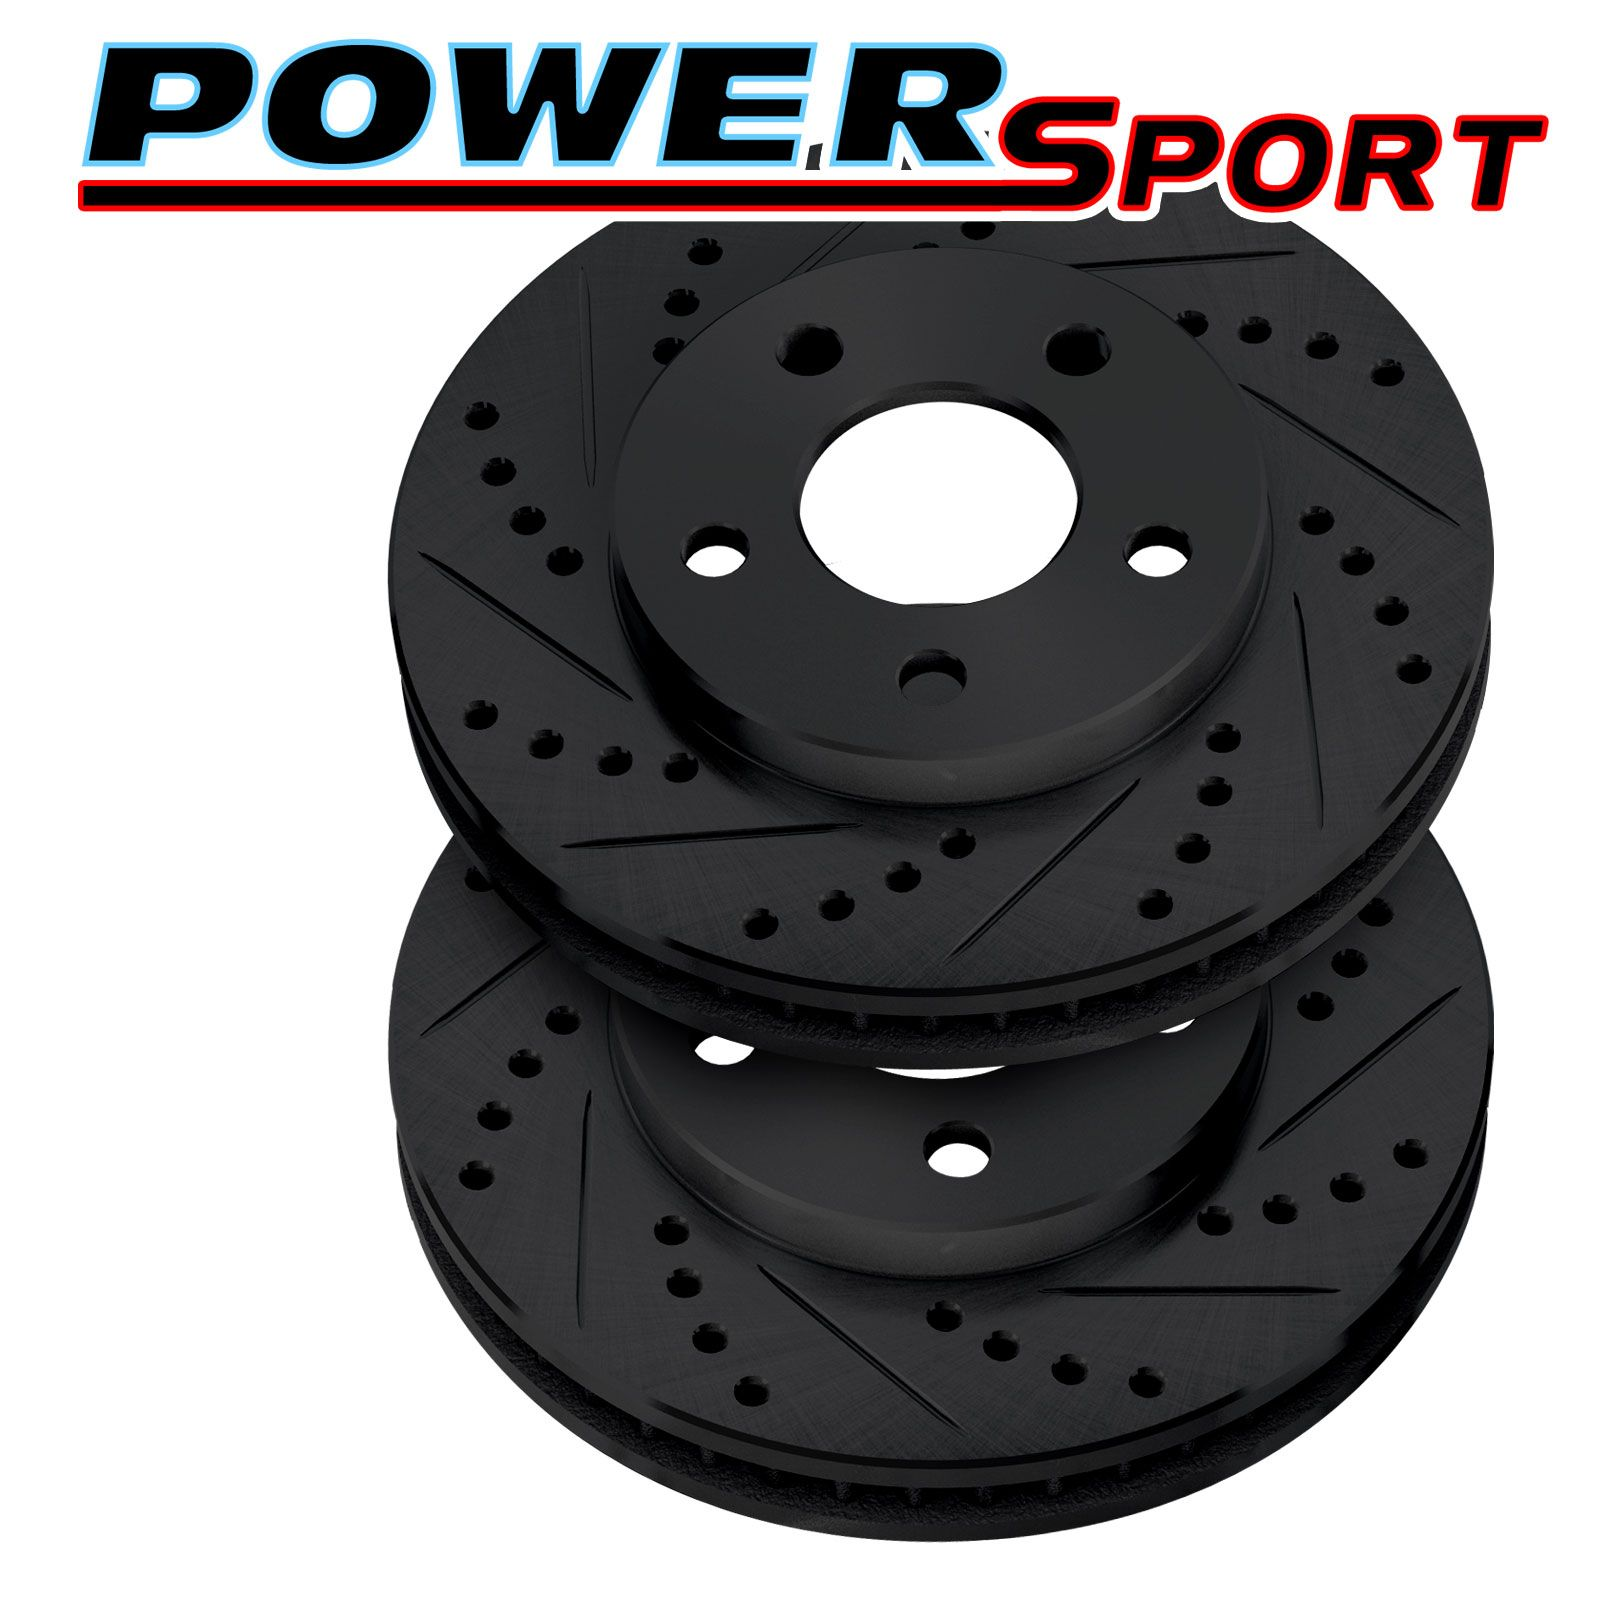 Brake Rotors BMW 750i FRONT POWERSPORT BLACK DRILLED SLOTTED